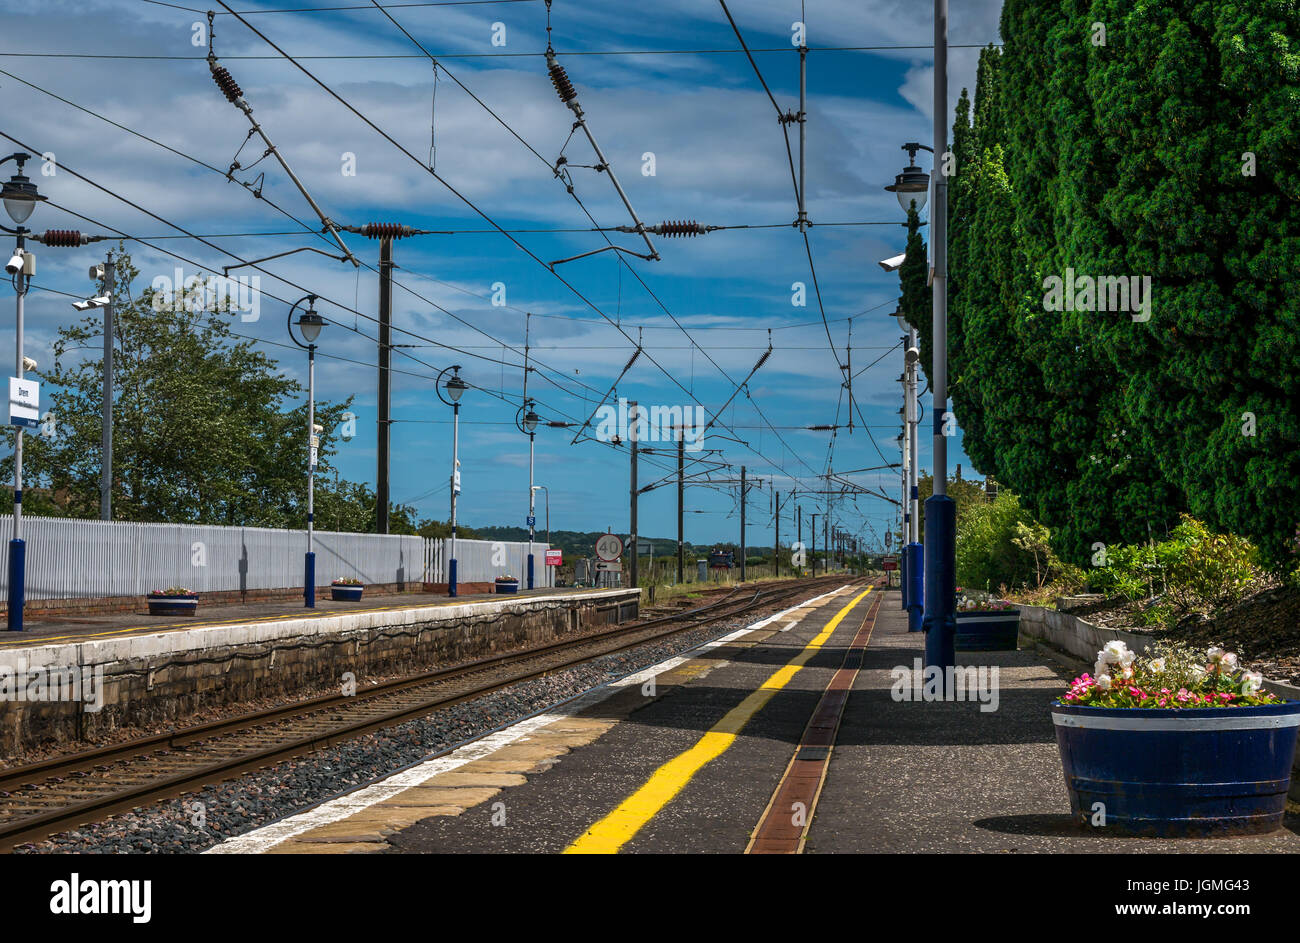 Train station platform at Drem, East Lothian, Scotland, UK, looking down railway tracks with overhead cables - Stock Image